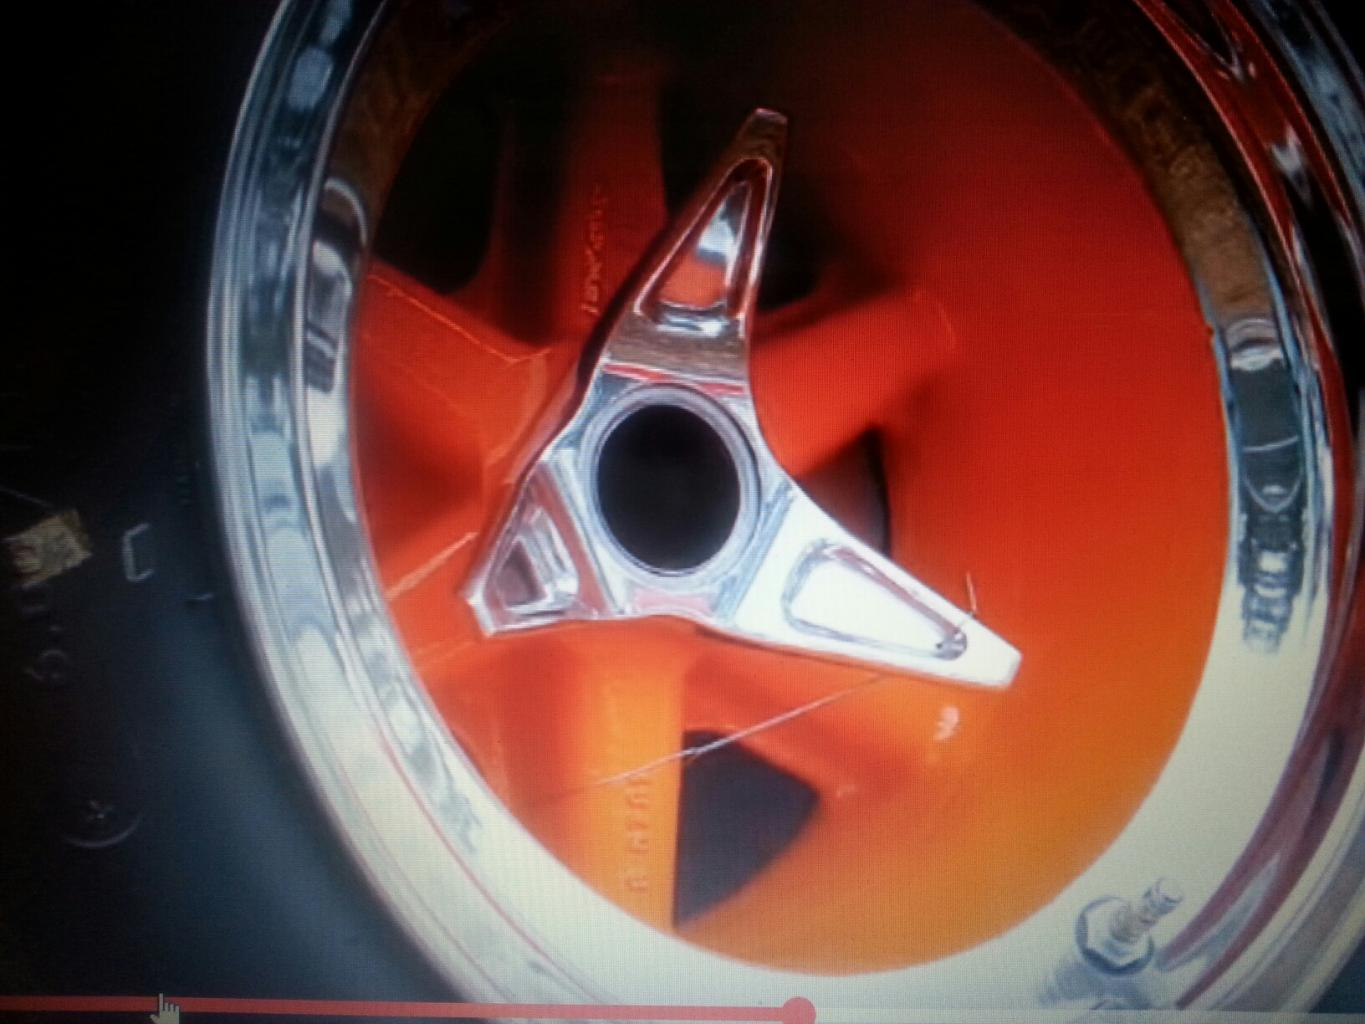 Wanted: Original style Gulf front and rear wheel spinners-20170410_172753-jpg